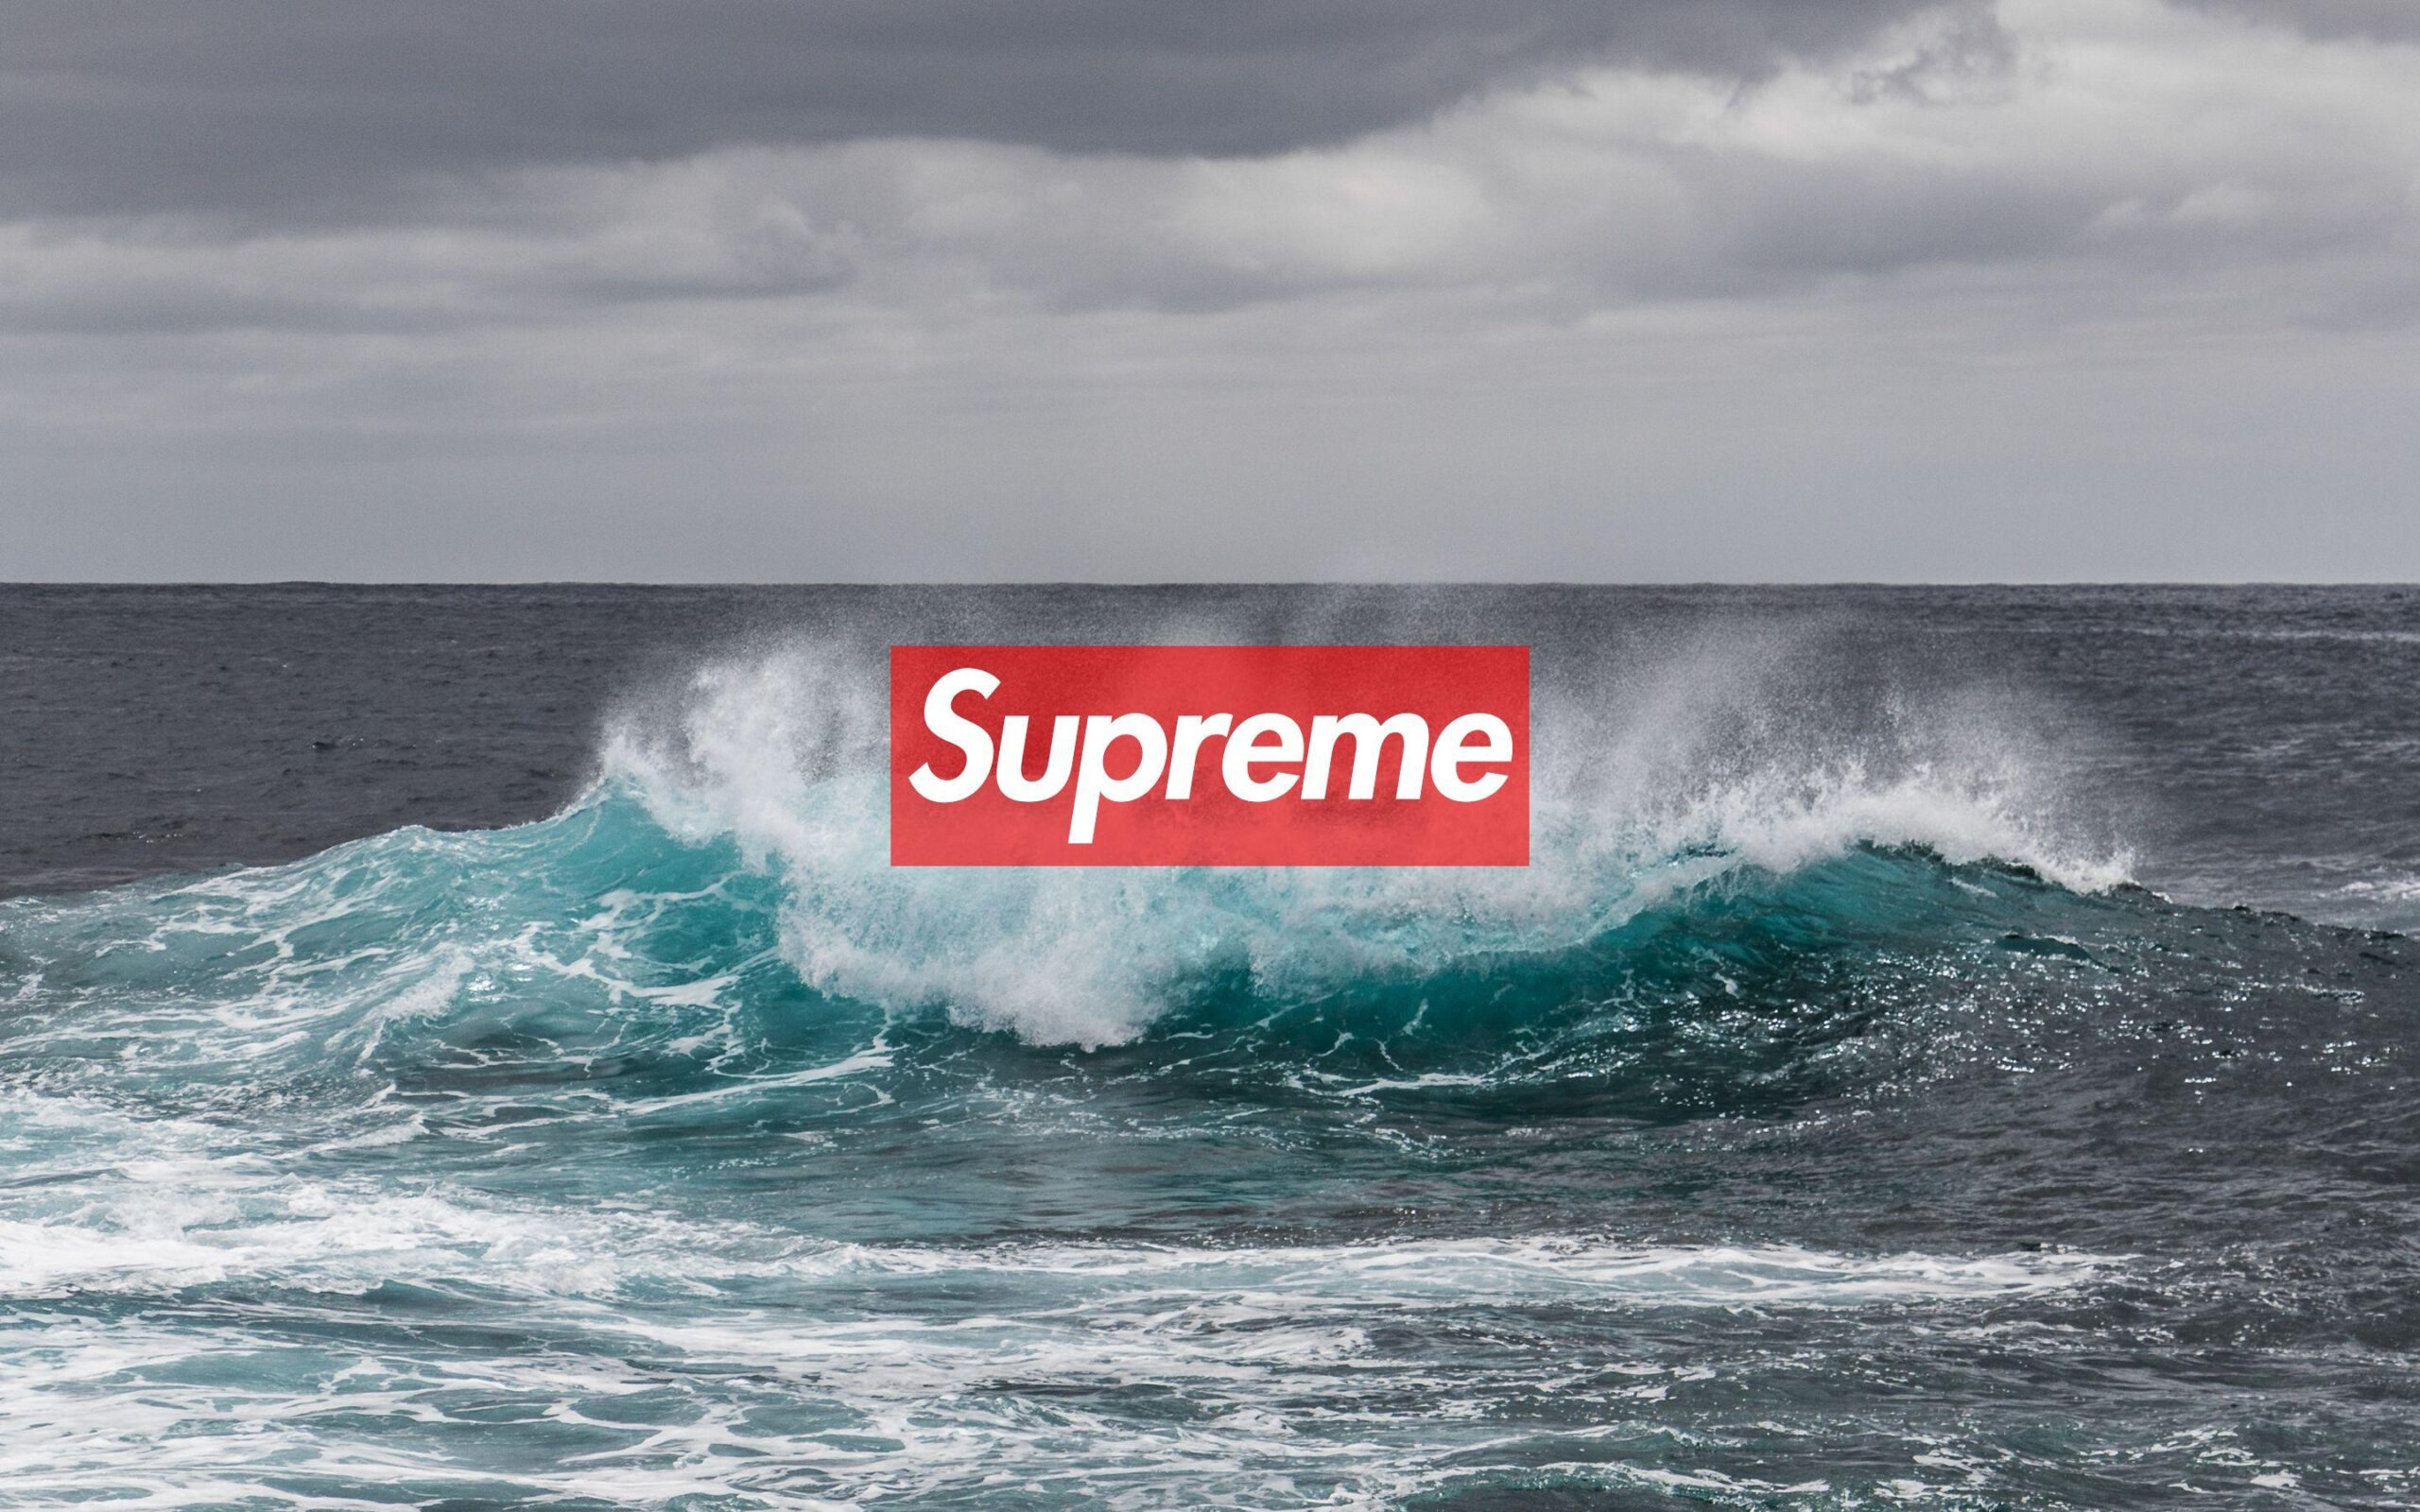 Supreme Wallpaper Hd For Iphone And Pc Trafoos